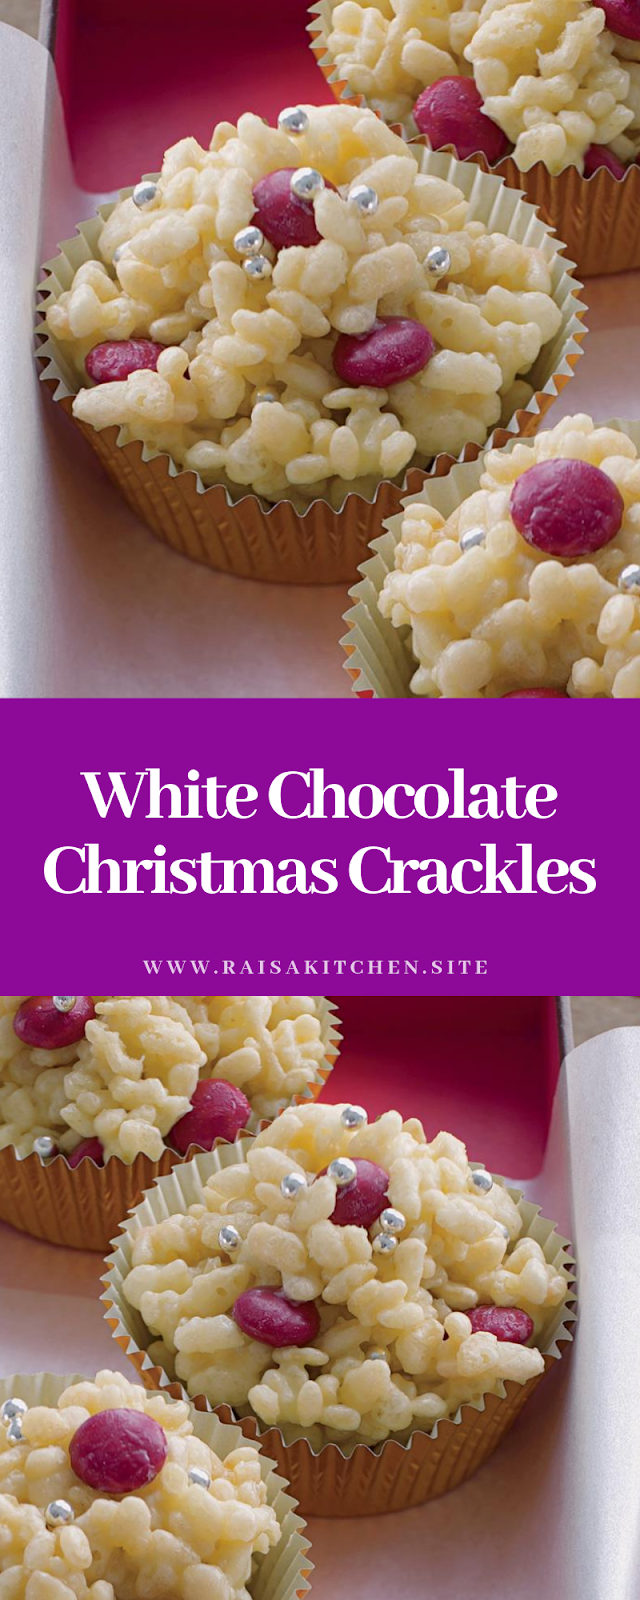 White Chocolate Christmas Crackles